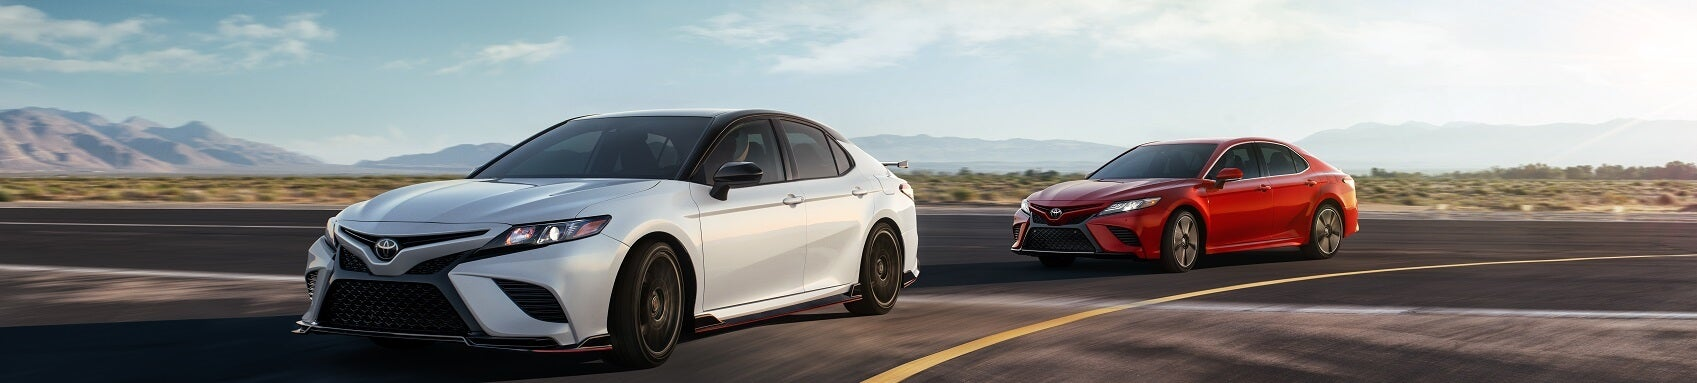 2020 Toyota Camry at Toyota Certified Pre-Owned near Dauphin PA